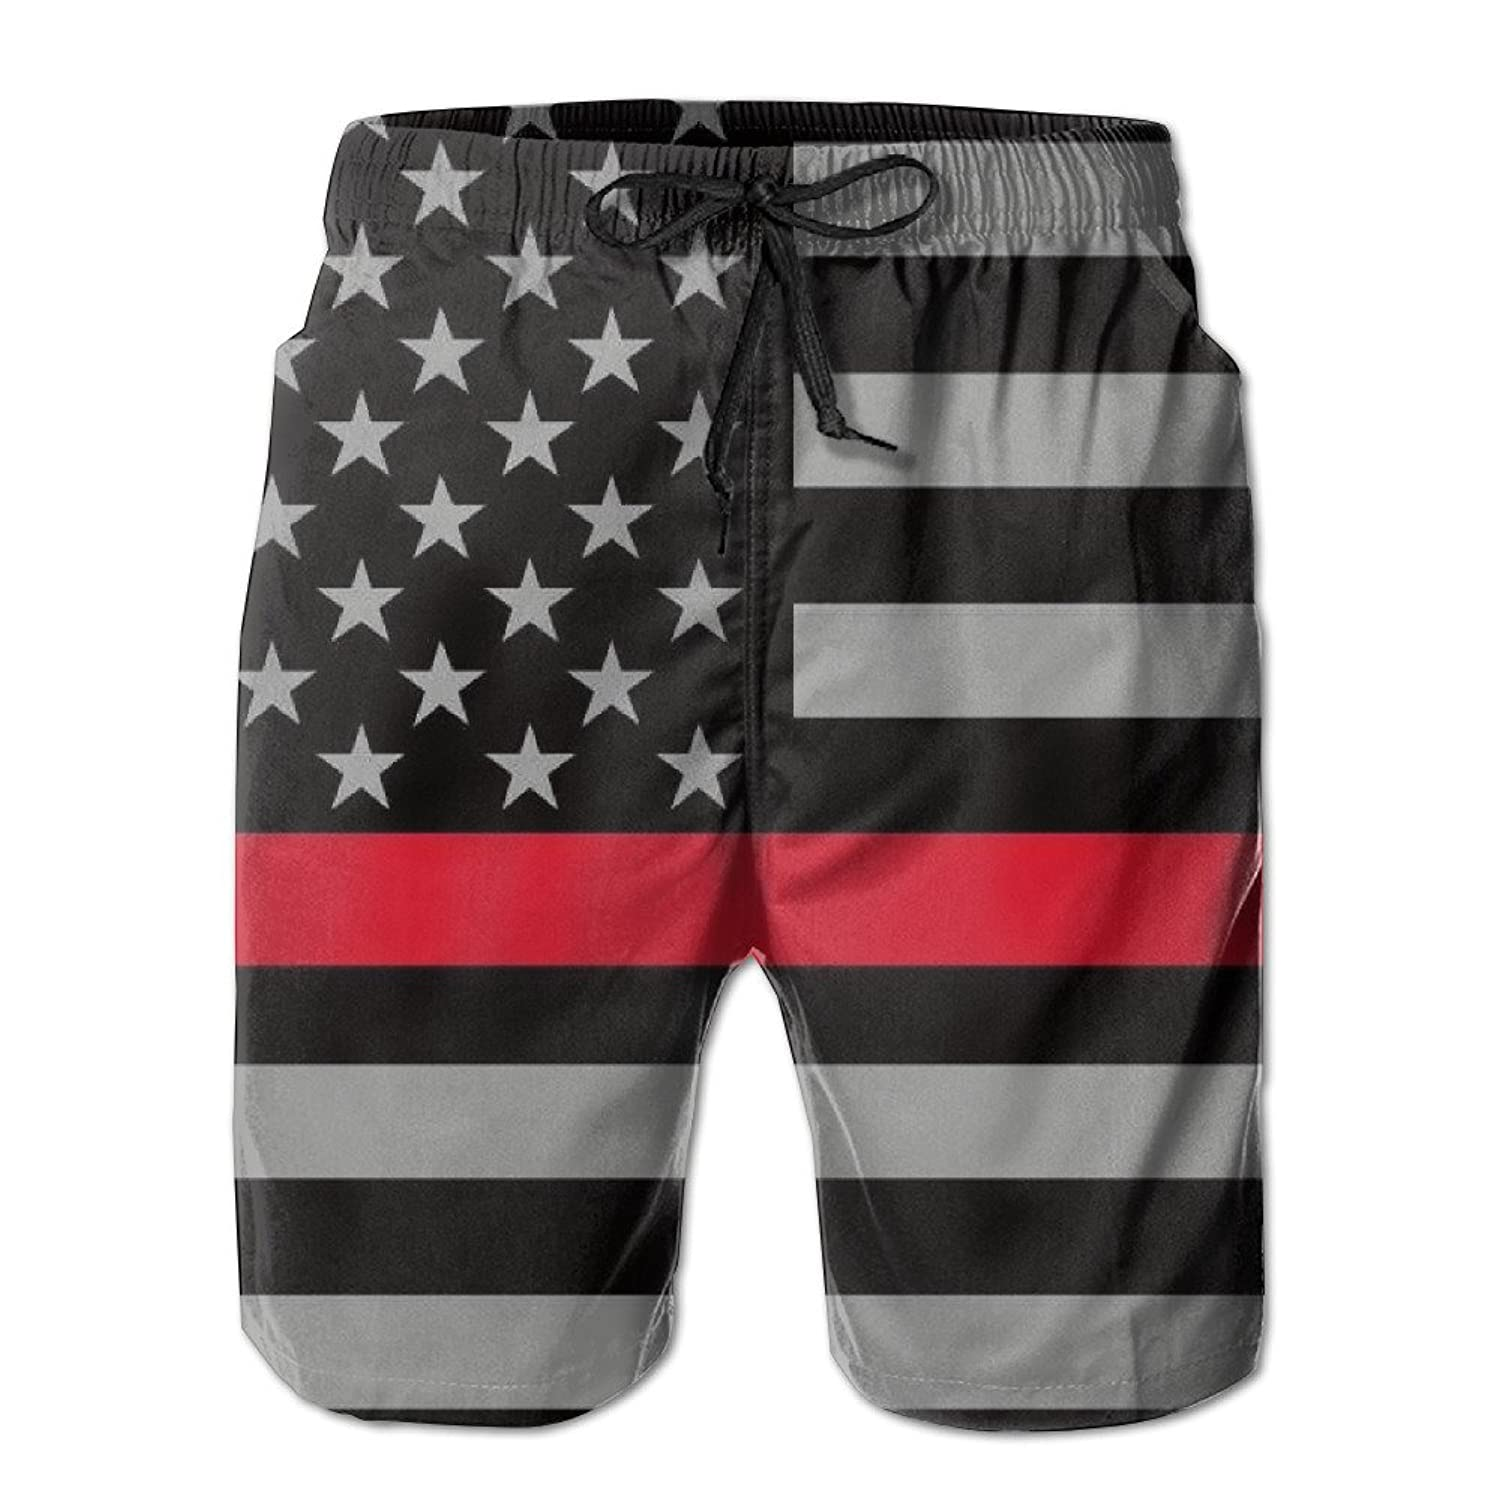 2017 Newest Men's Thin Red Line Flag Quick Dry Beach Board Shorts